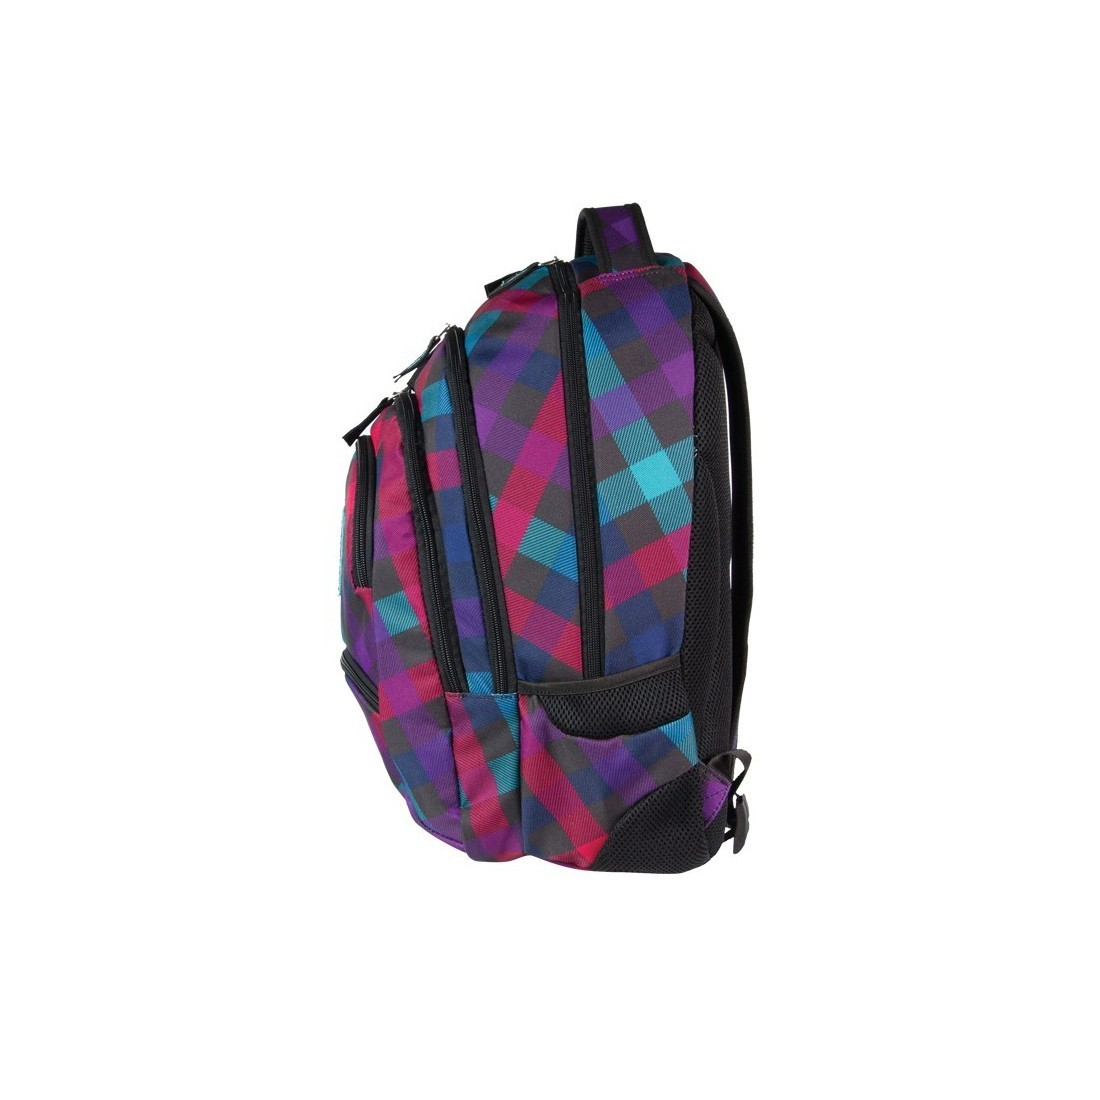 PLECAK MŁODZIEŻOWY COOLPACK COLLEGE ELECTRA CP 161 - plecak-tornister.pl